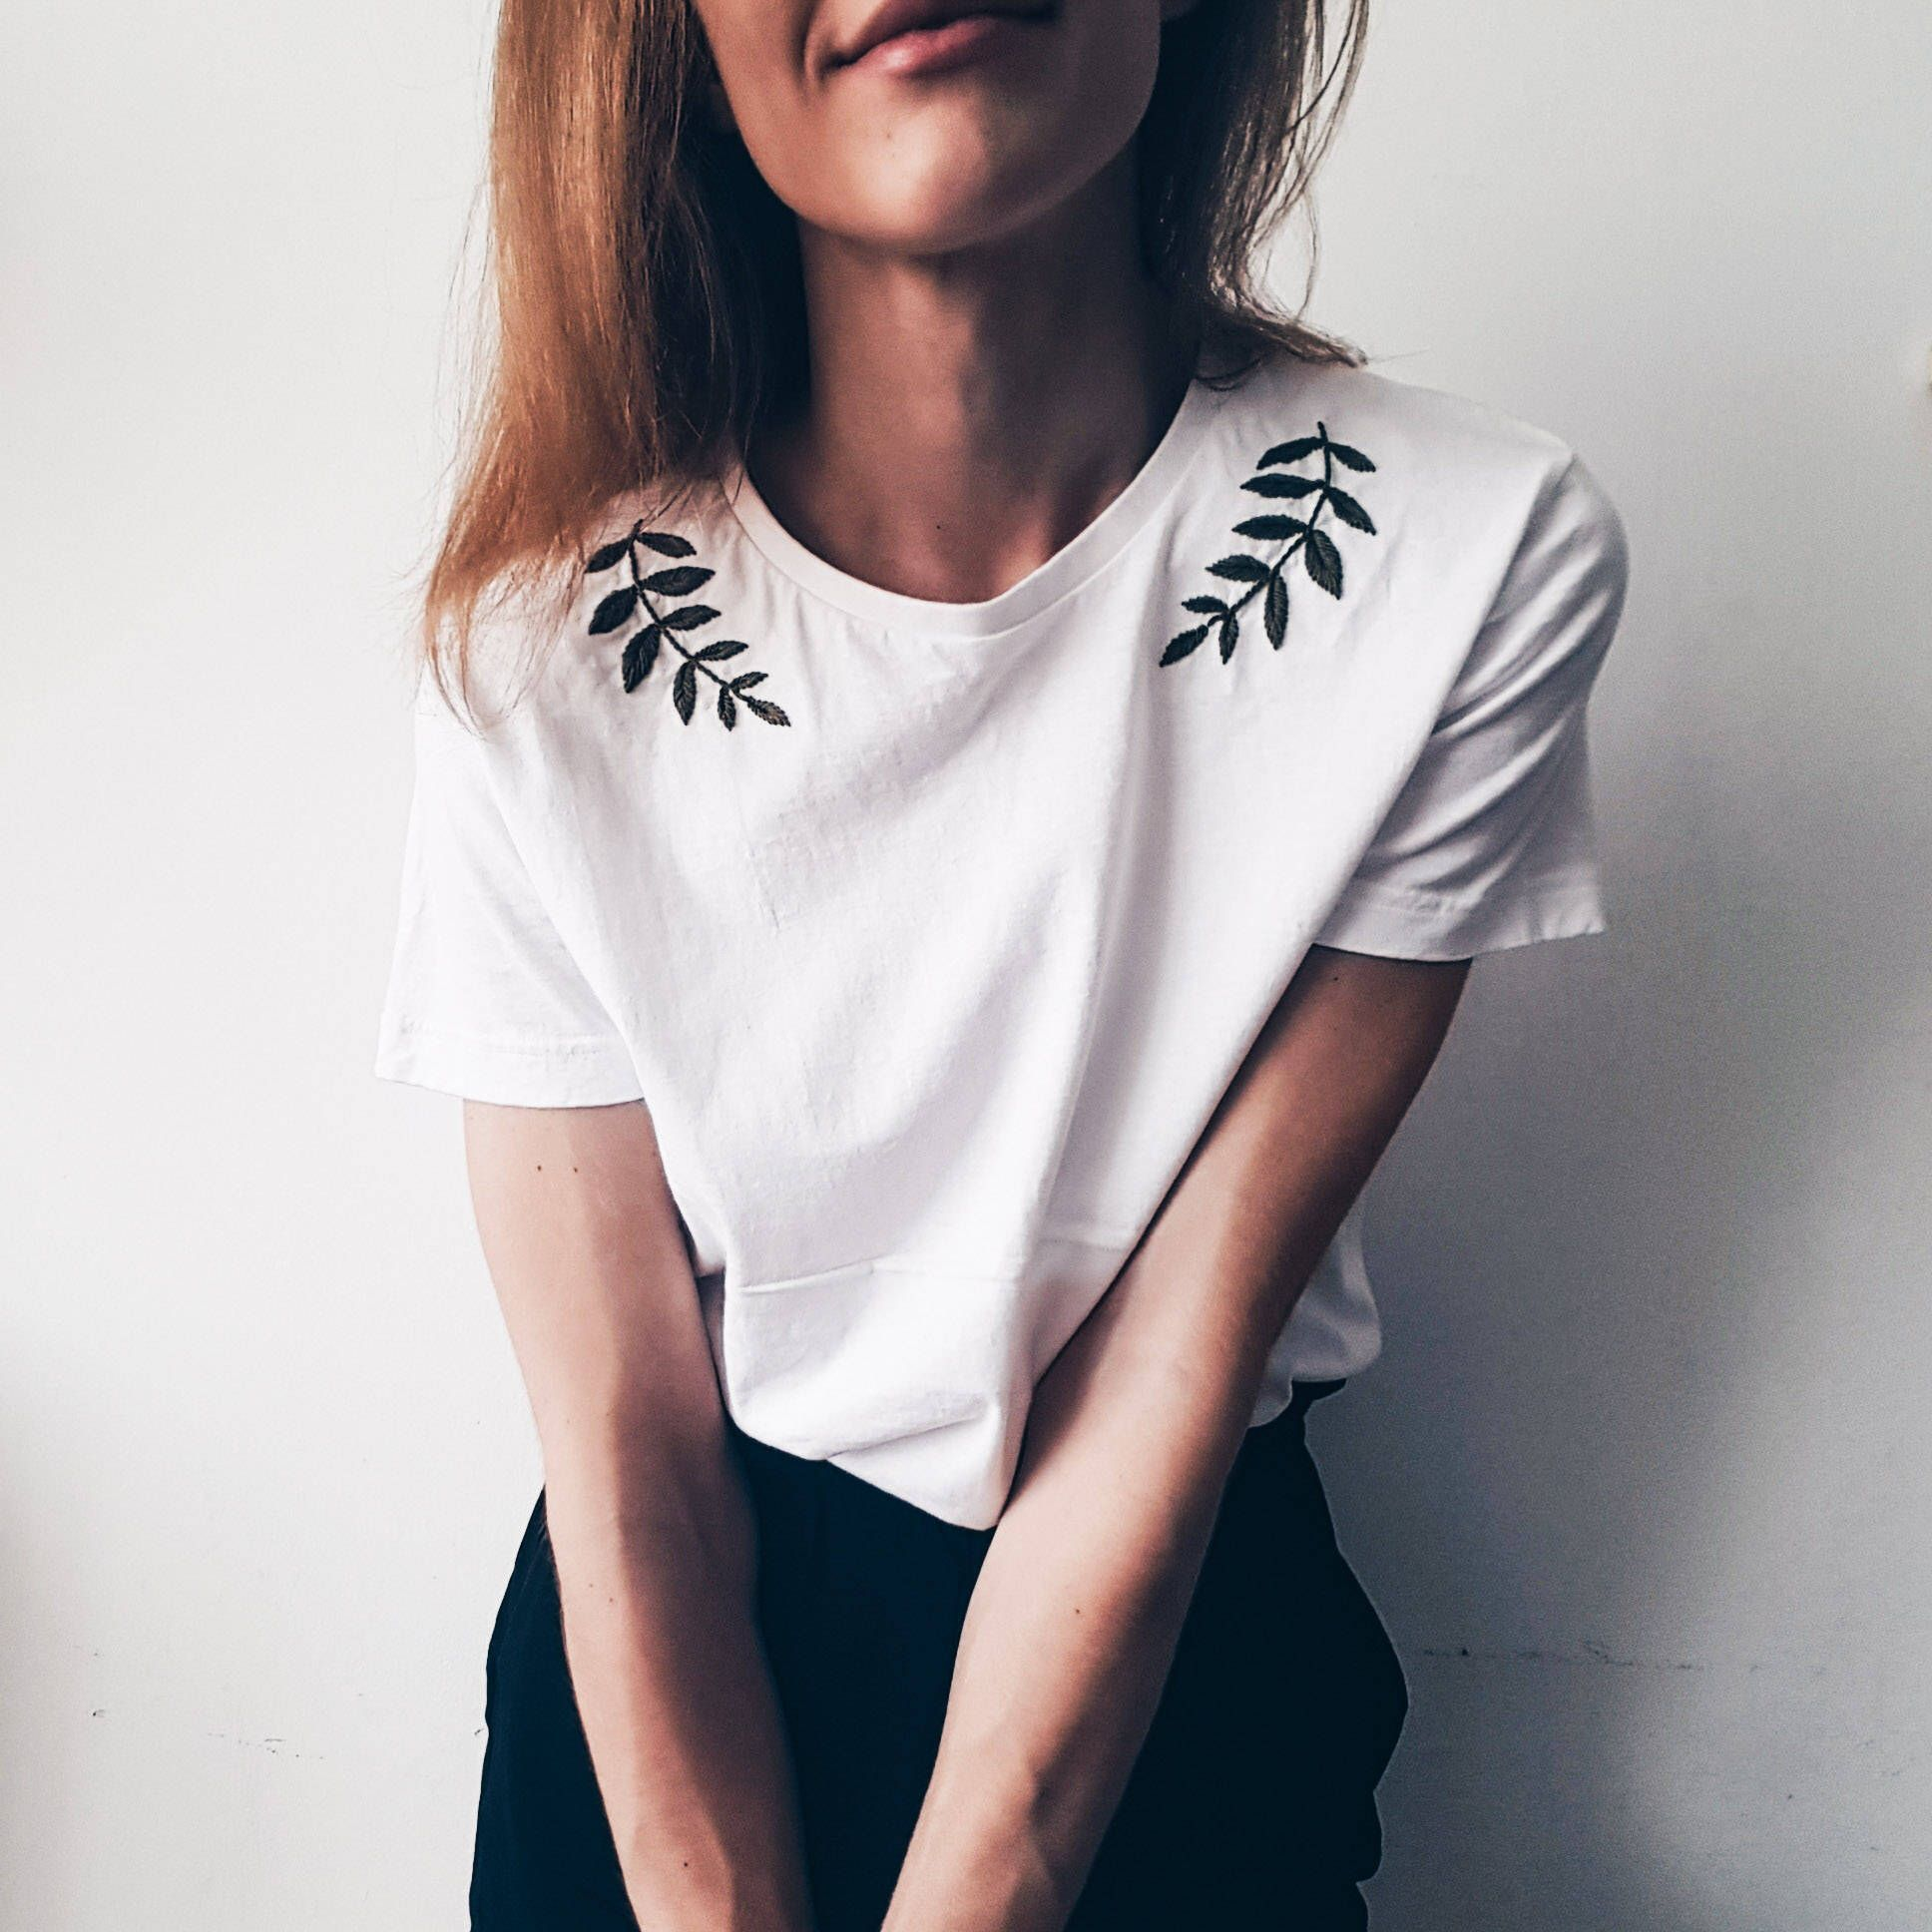 Embroidery - Hand Embroidery - Embroidery t shirt - Embroidery tshirt - Womens clothes - White t shi #allwhiteclothes